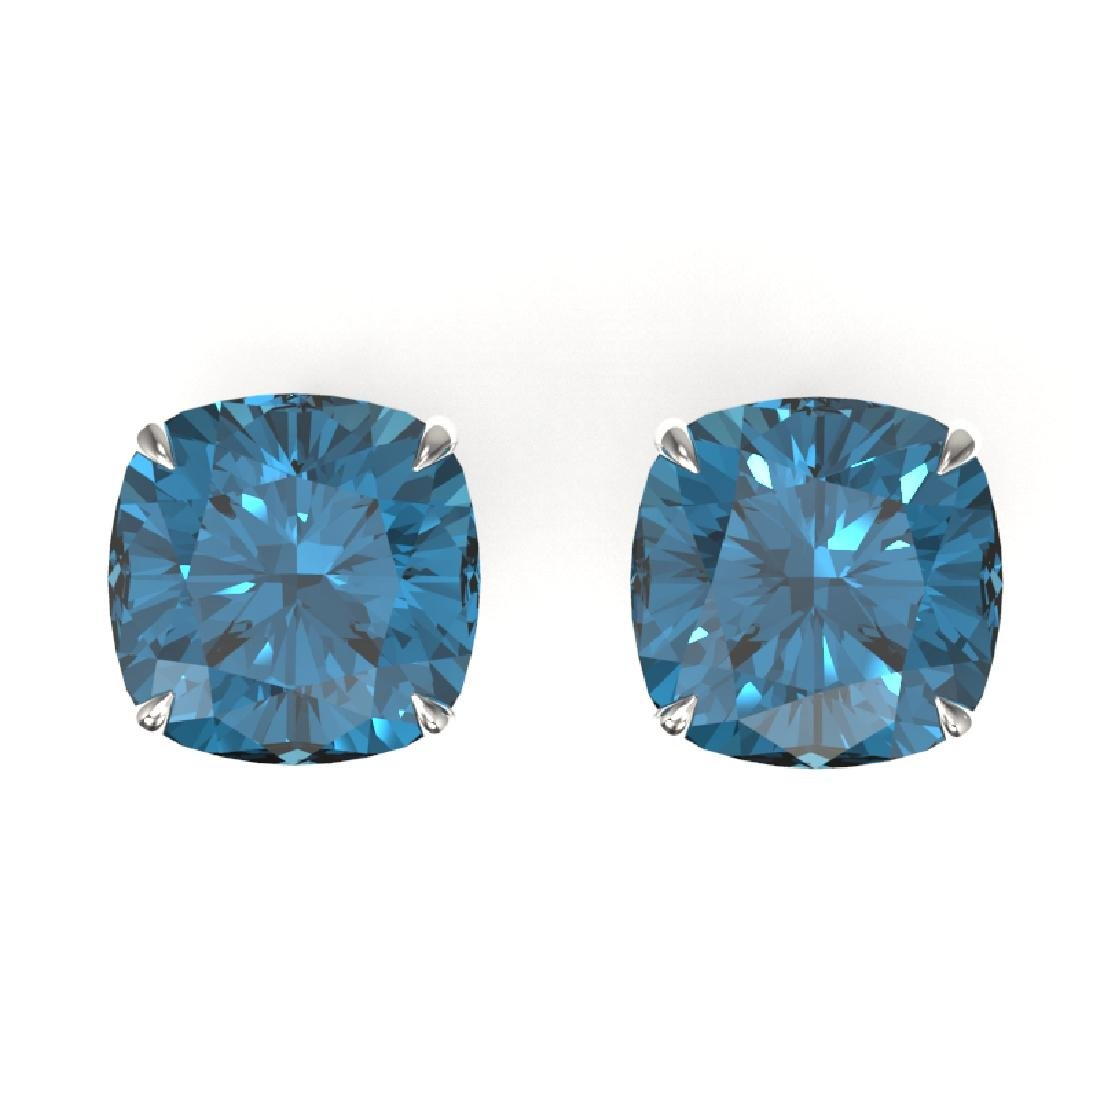 12 CTW Cushion Cut London Blue Topaz Designer Stud